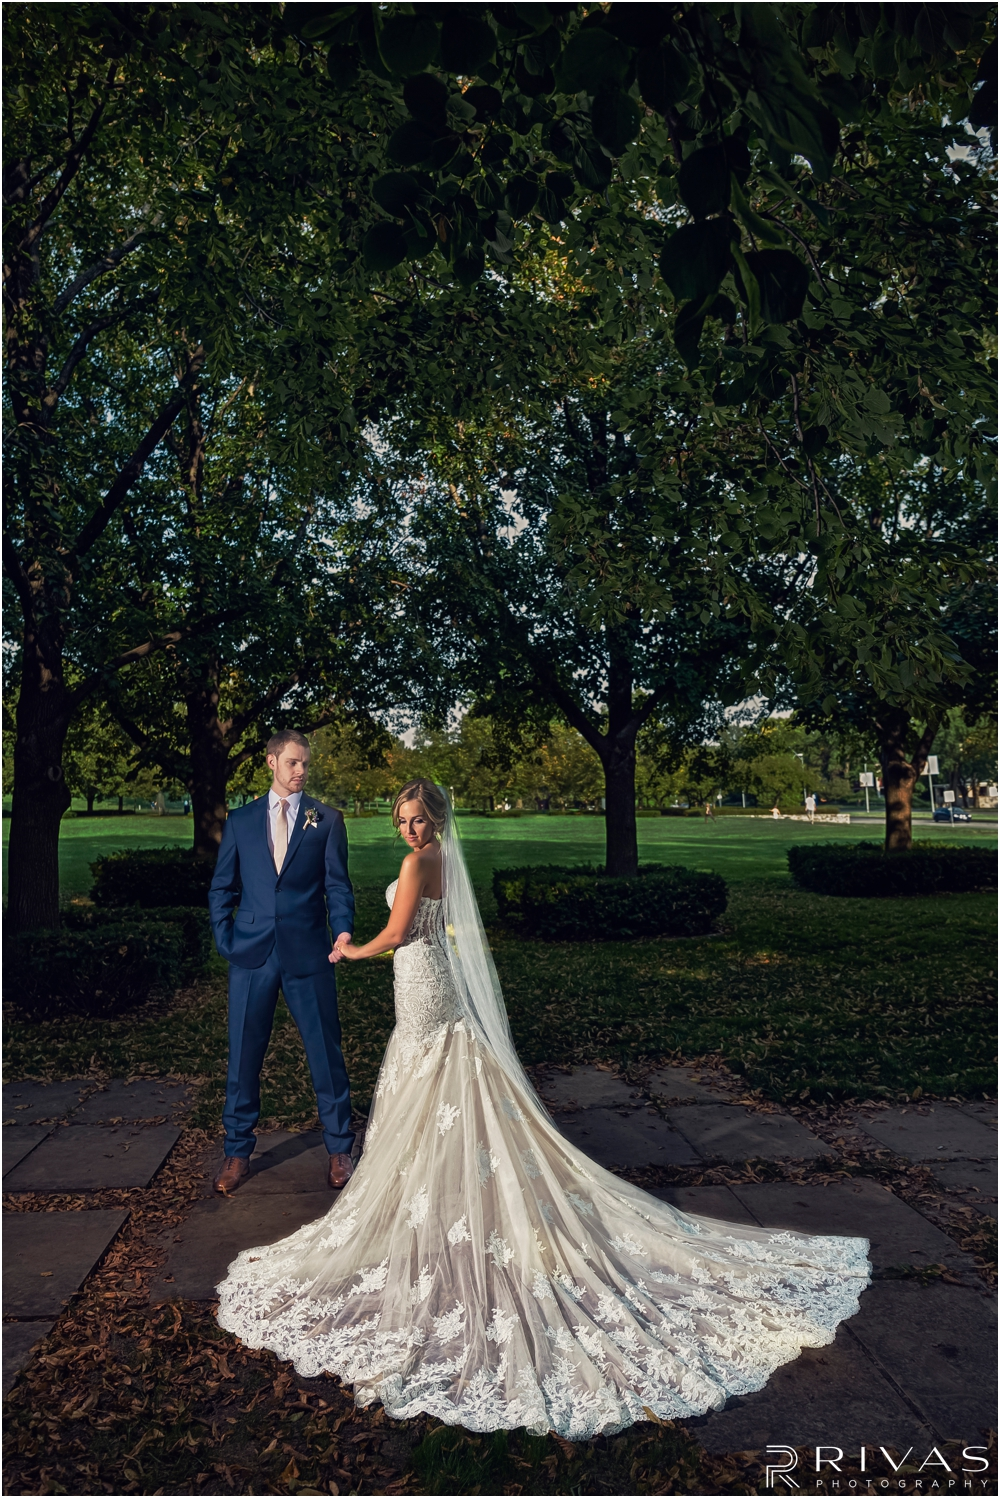 early fall wedding | Pictures of a bride and groom holding hands at The Nelson Atkins Museum of Art.